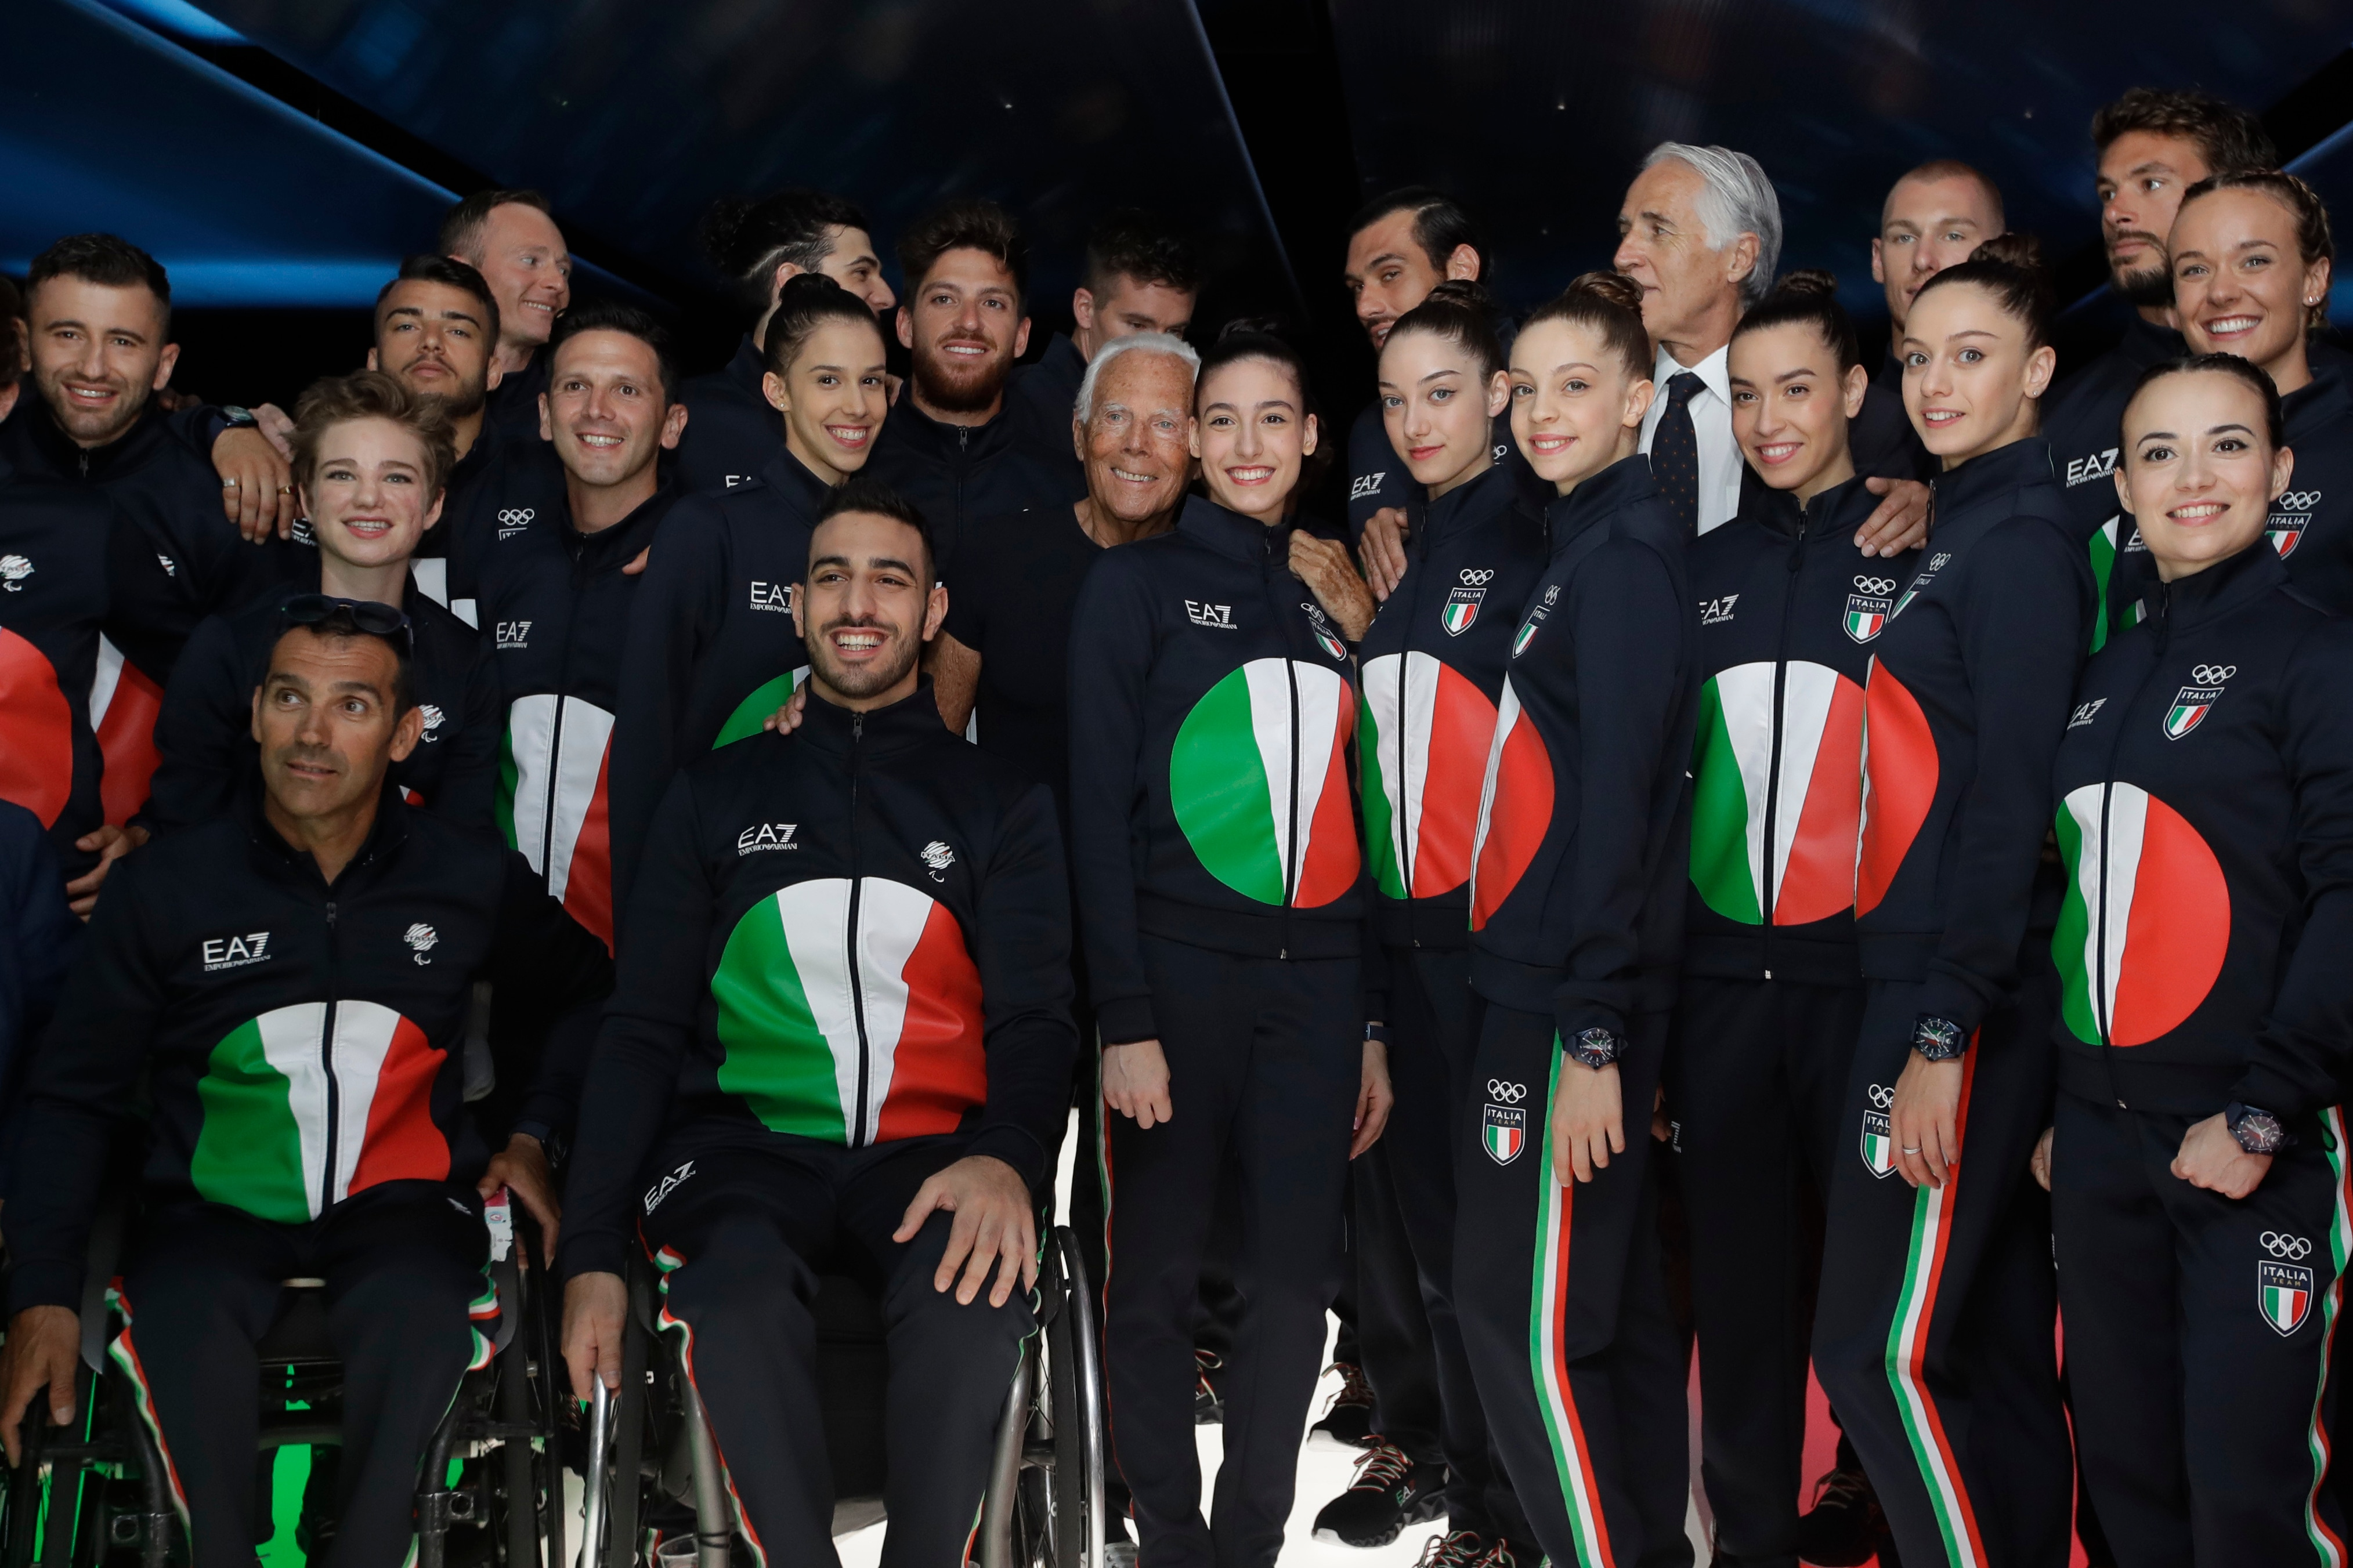 FILE - In this June 15, 2019 file photo, designer Giorgio Armani, centre, poses with Italian Olympic athletes at the end of the Emporio Armani men's Spring-Summer 2020 collection, unveiled during the fashion week, in Milan, Italy. Emporio Armani decked out Italy's team in track suits with a reinterpretation of Japan's rising sun in the colors of the country's flag: red, green and white.The Olympics in Tokyo open July 23, when the world's athletes will march behind their flag-bearers. (AP Photo/Luca Bruno)(AP)